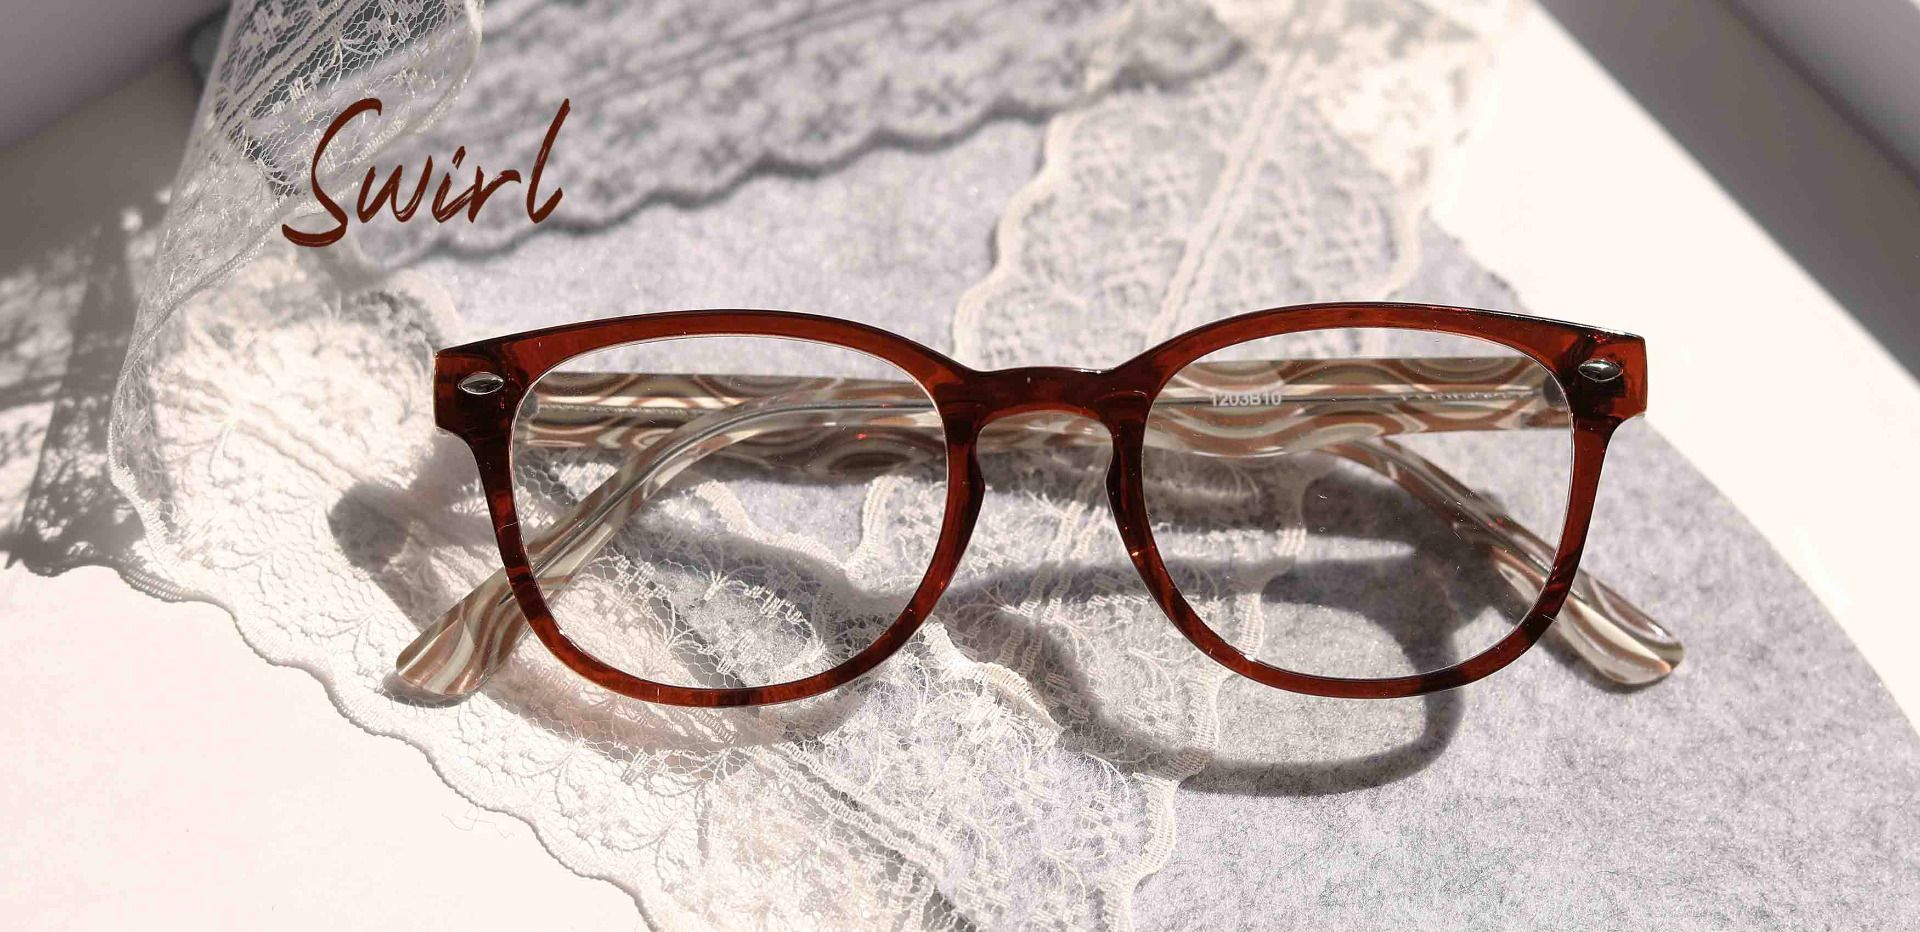 Swirl Classic Square Reading Glasses - Brown